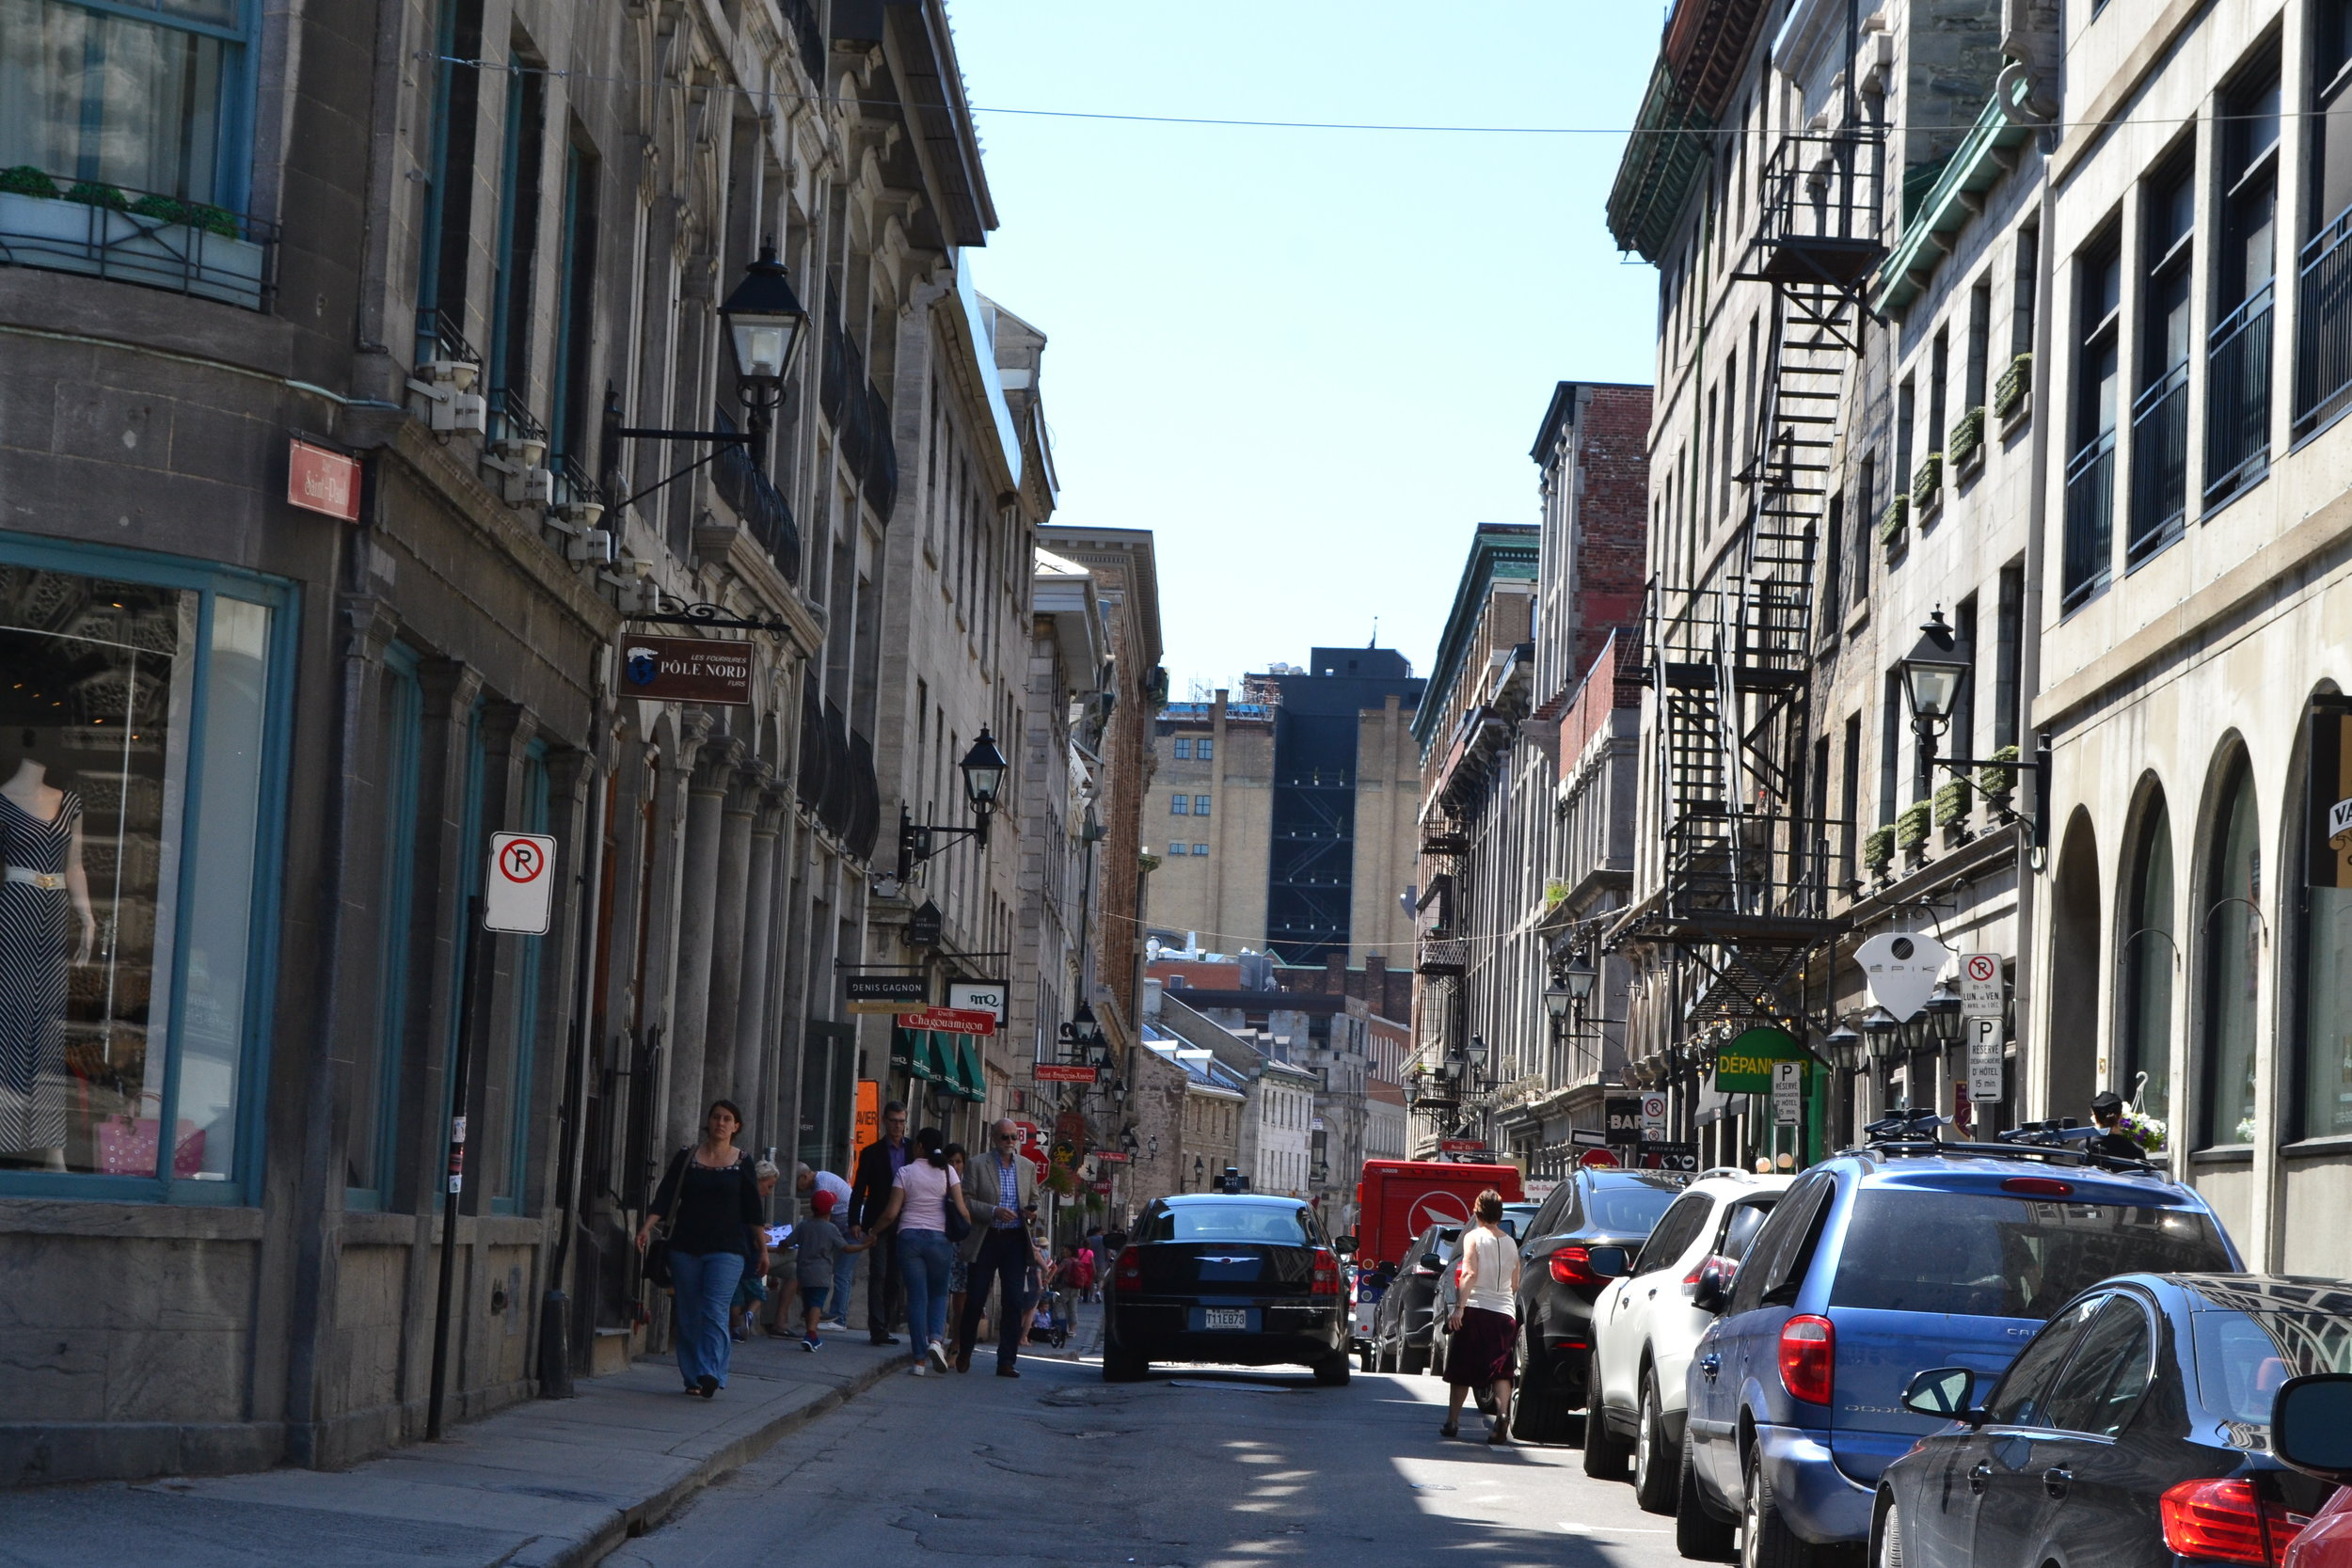 Streets of Old Port in Montreal.